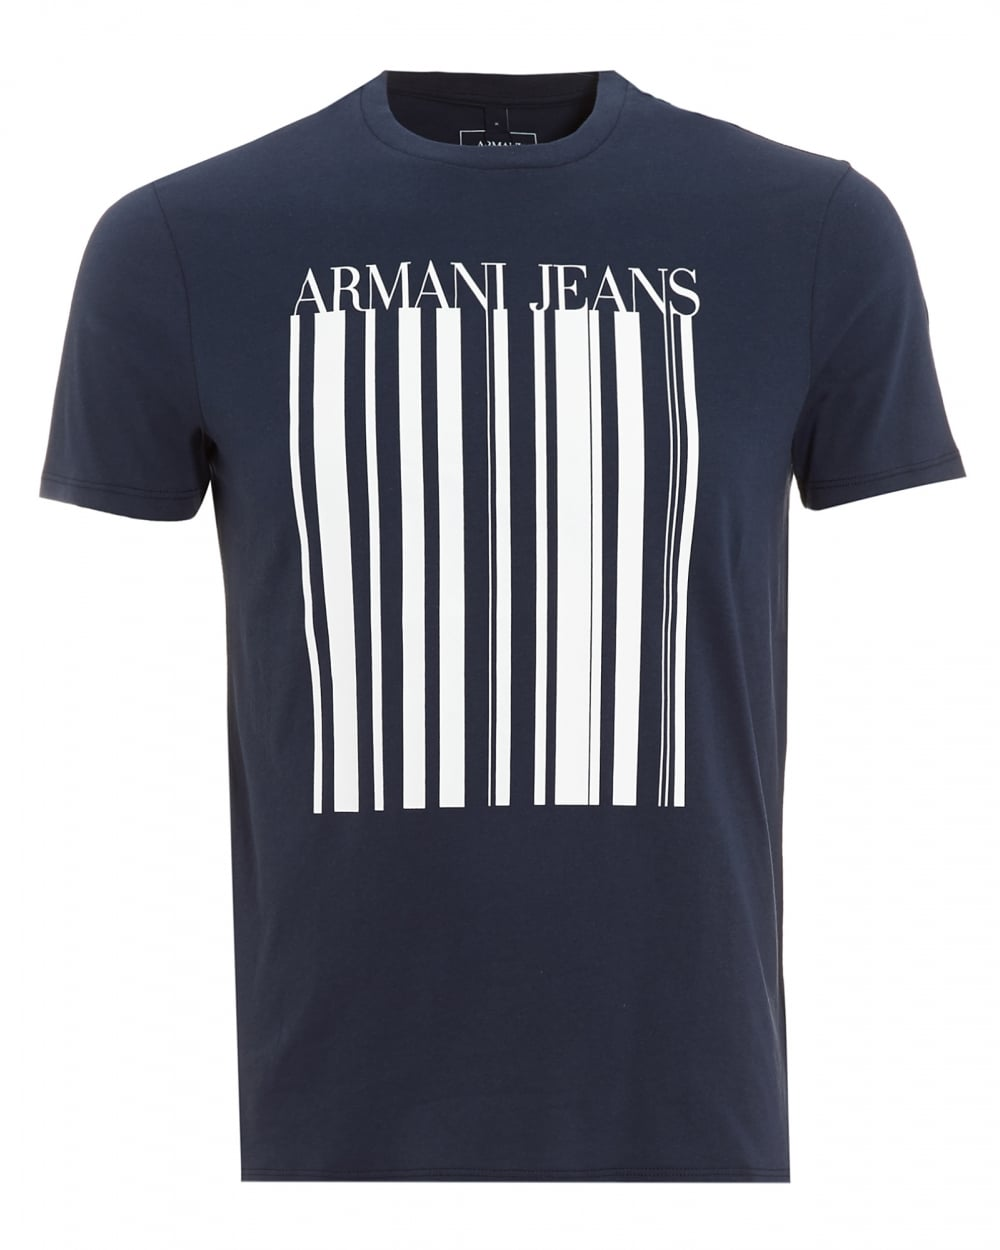 armani jeans mens t shirt barcode logo navy blue tee. Black Bedroom Furniture Sets. Home Design Ideas